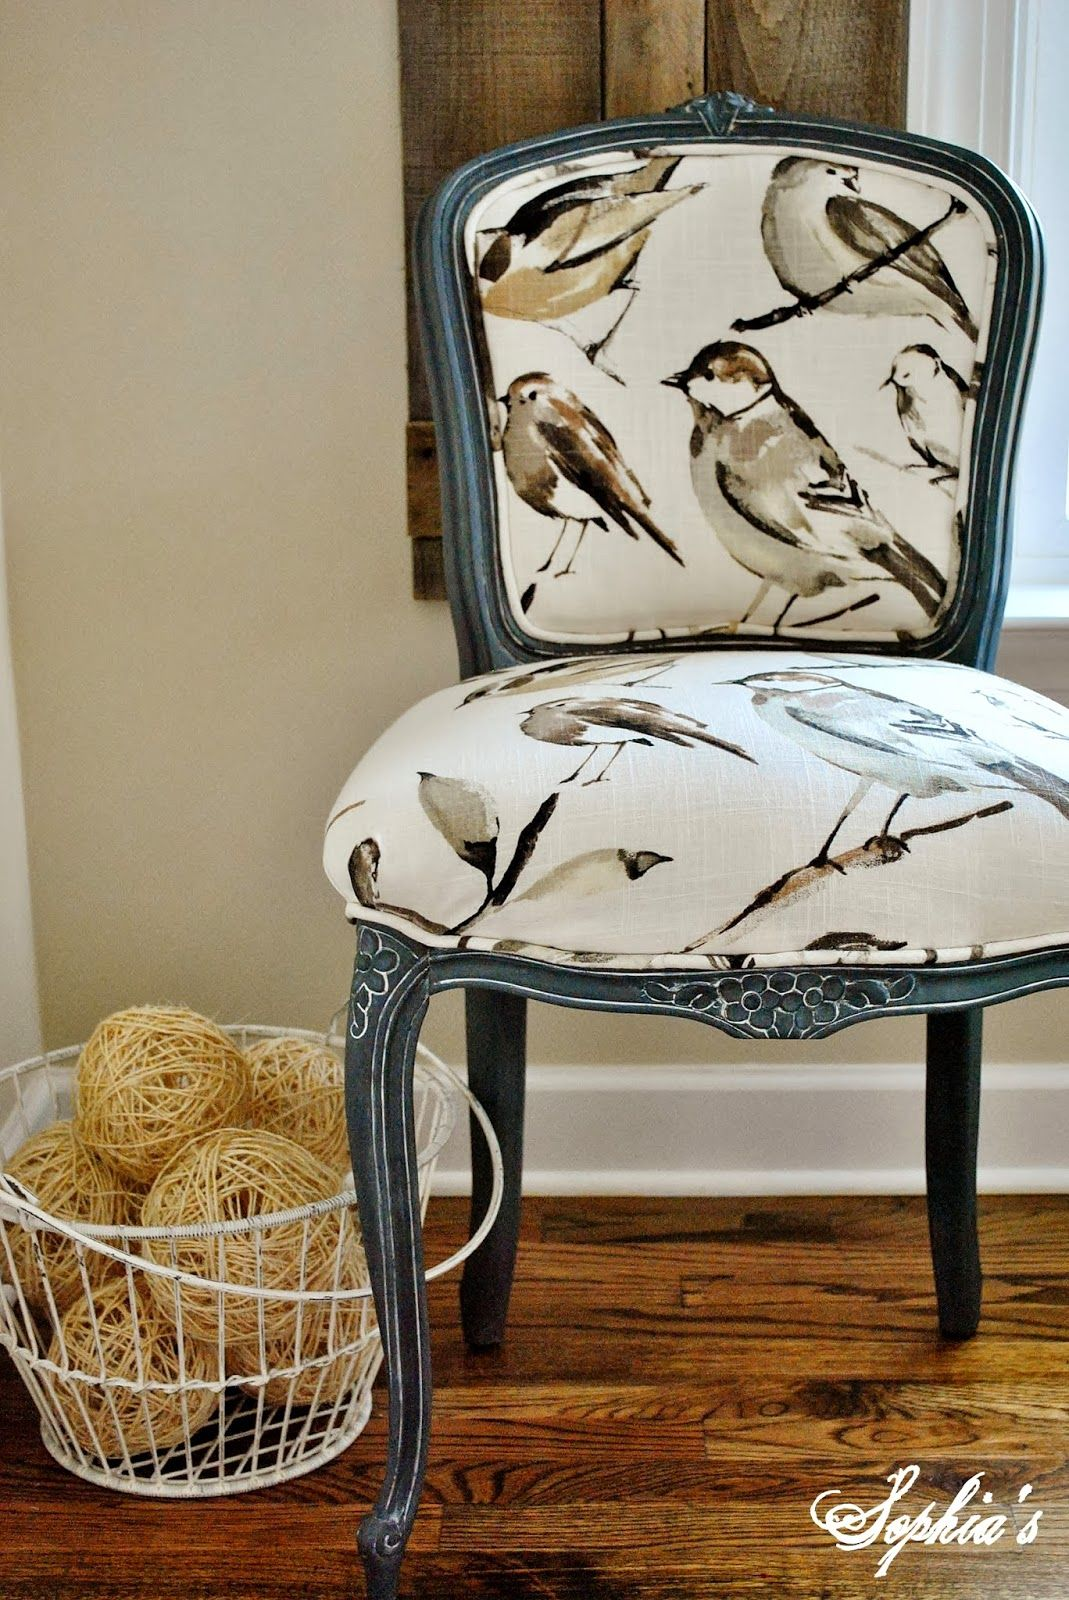 Redo the chairs with a fun fabric french chair reupholstery makeover and tutorial